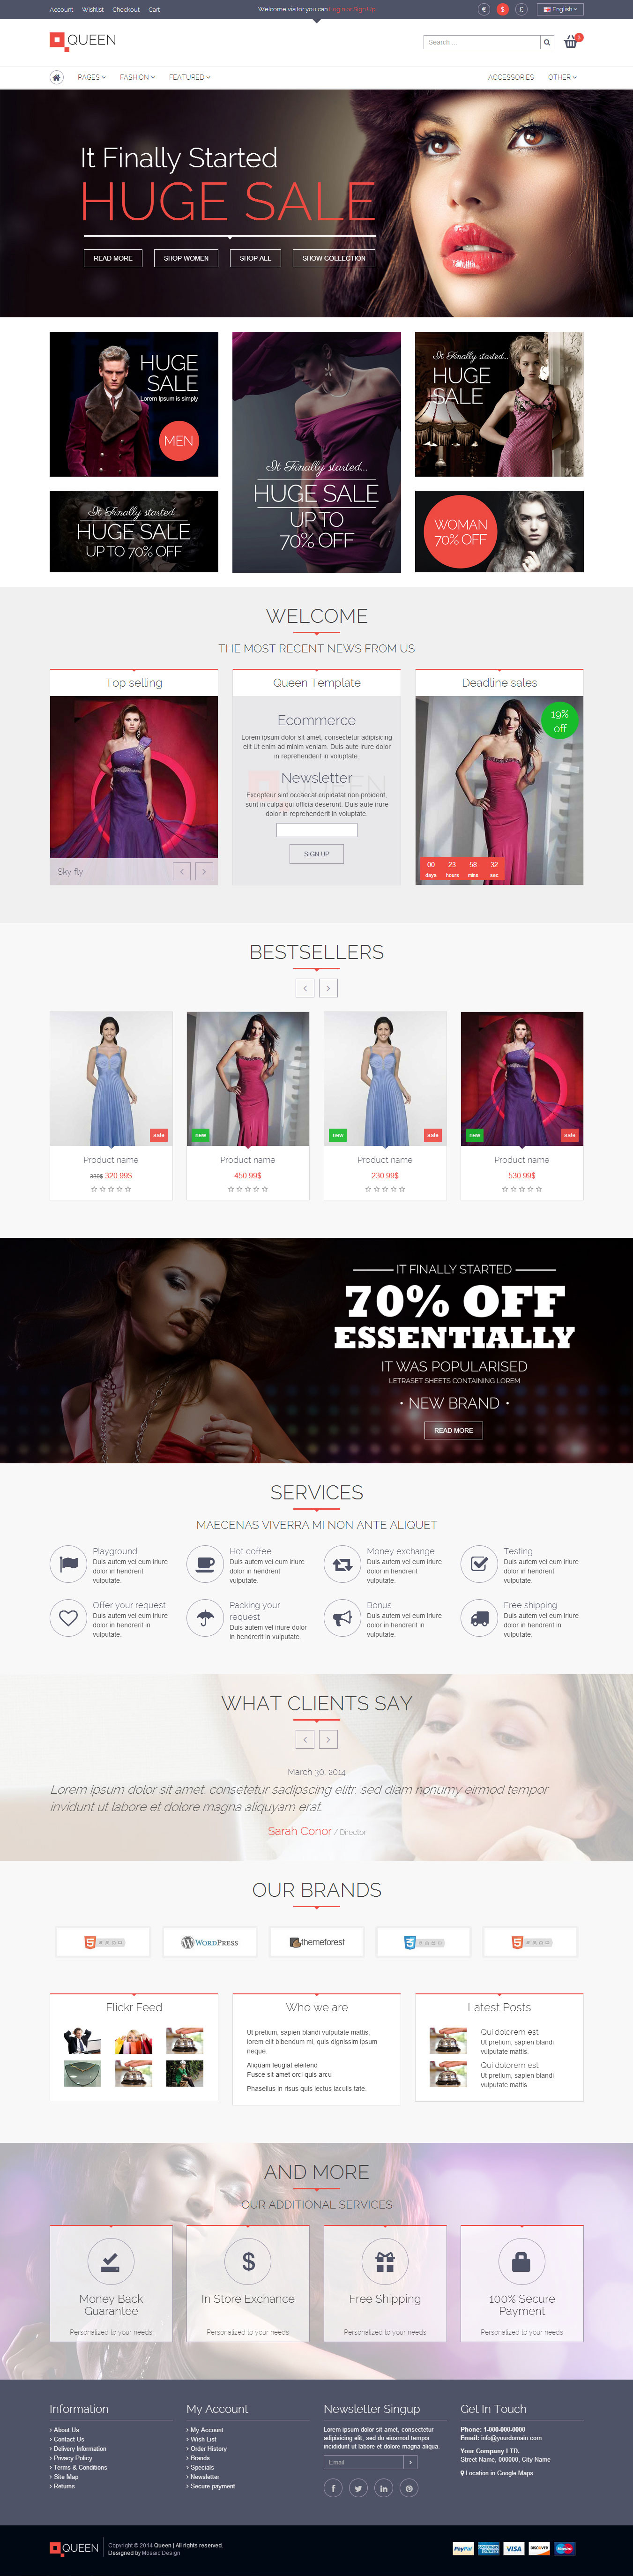 Queen - Responsive E-Commerce Template v 1.4 by MosaicDesign ...